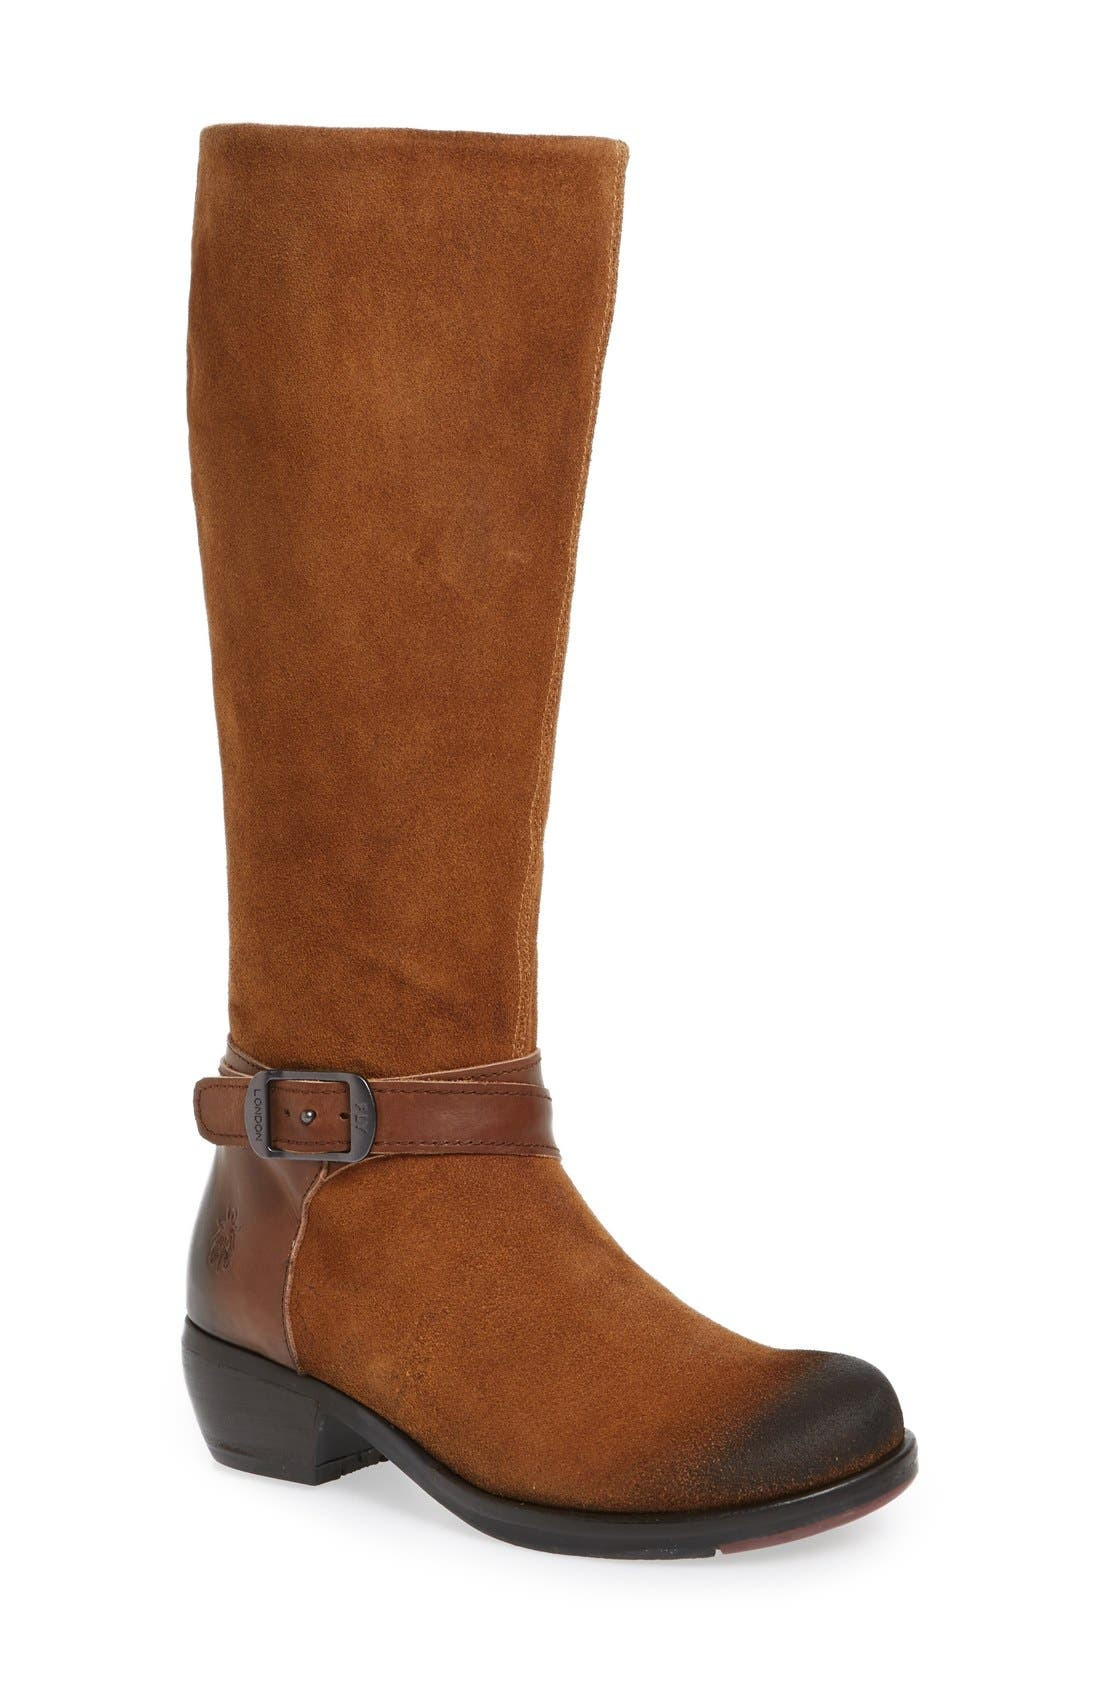 FLY LONDON 'Meek' Knee High Buckle Strap Boot